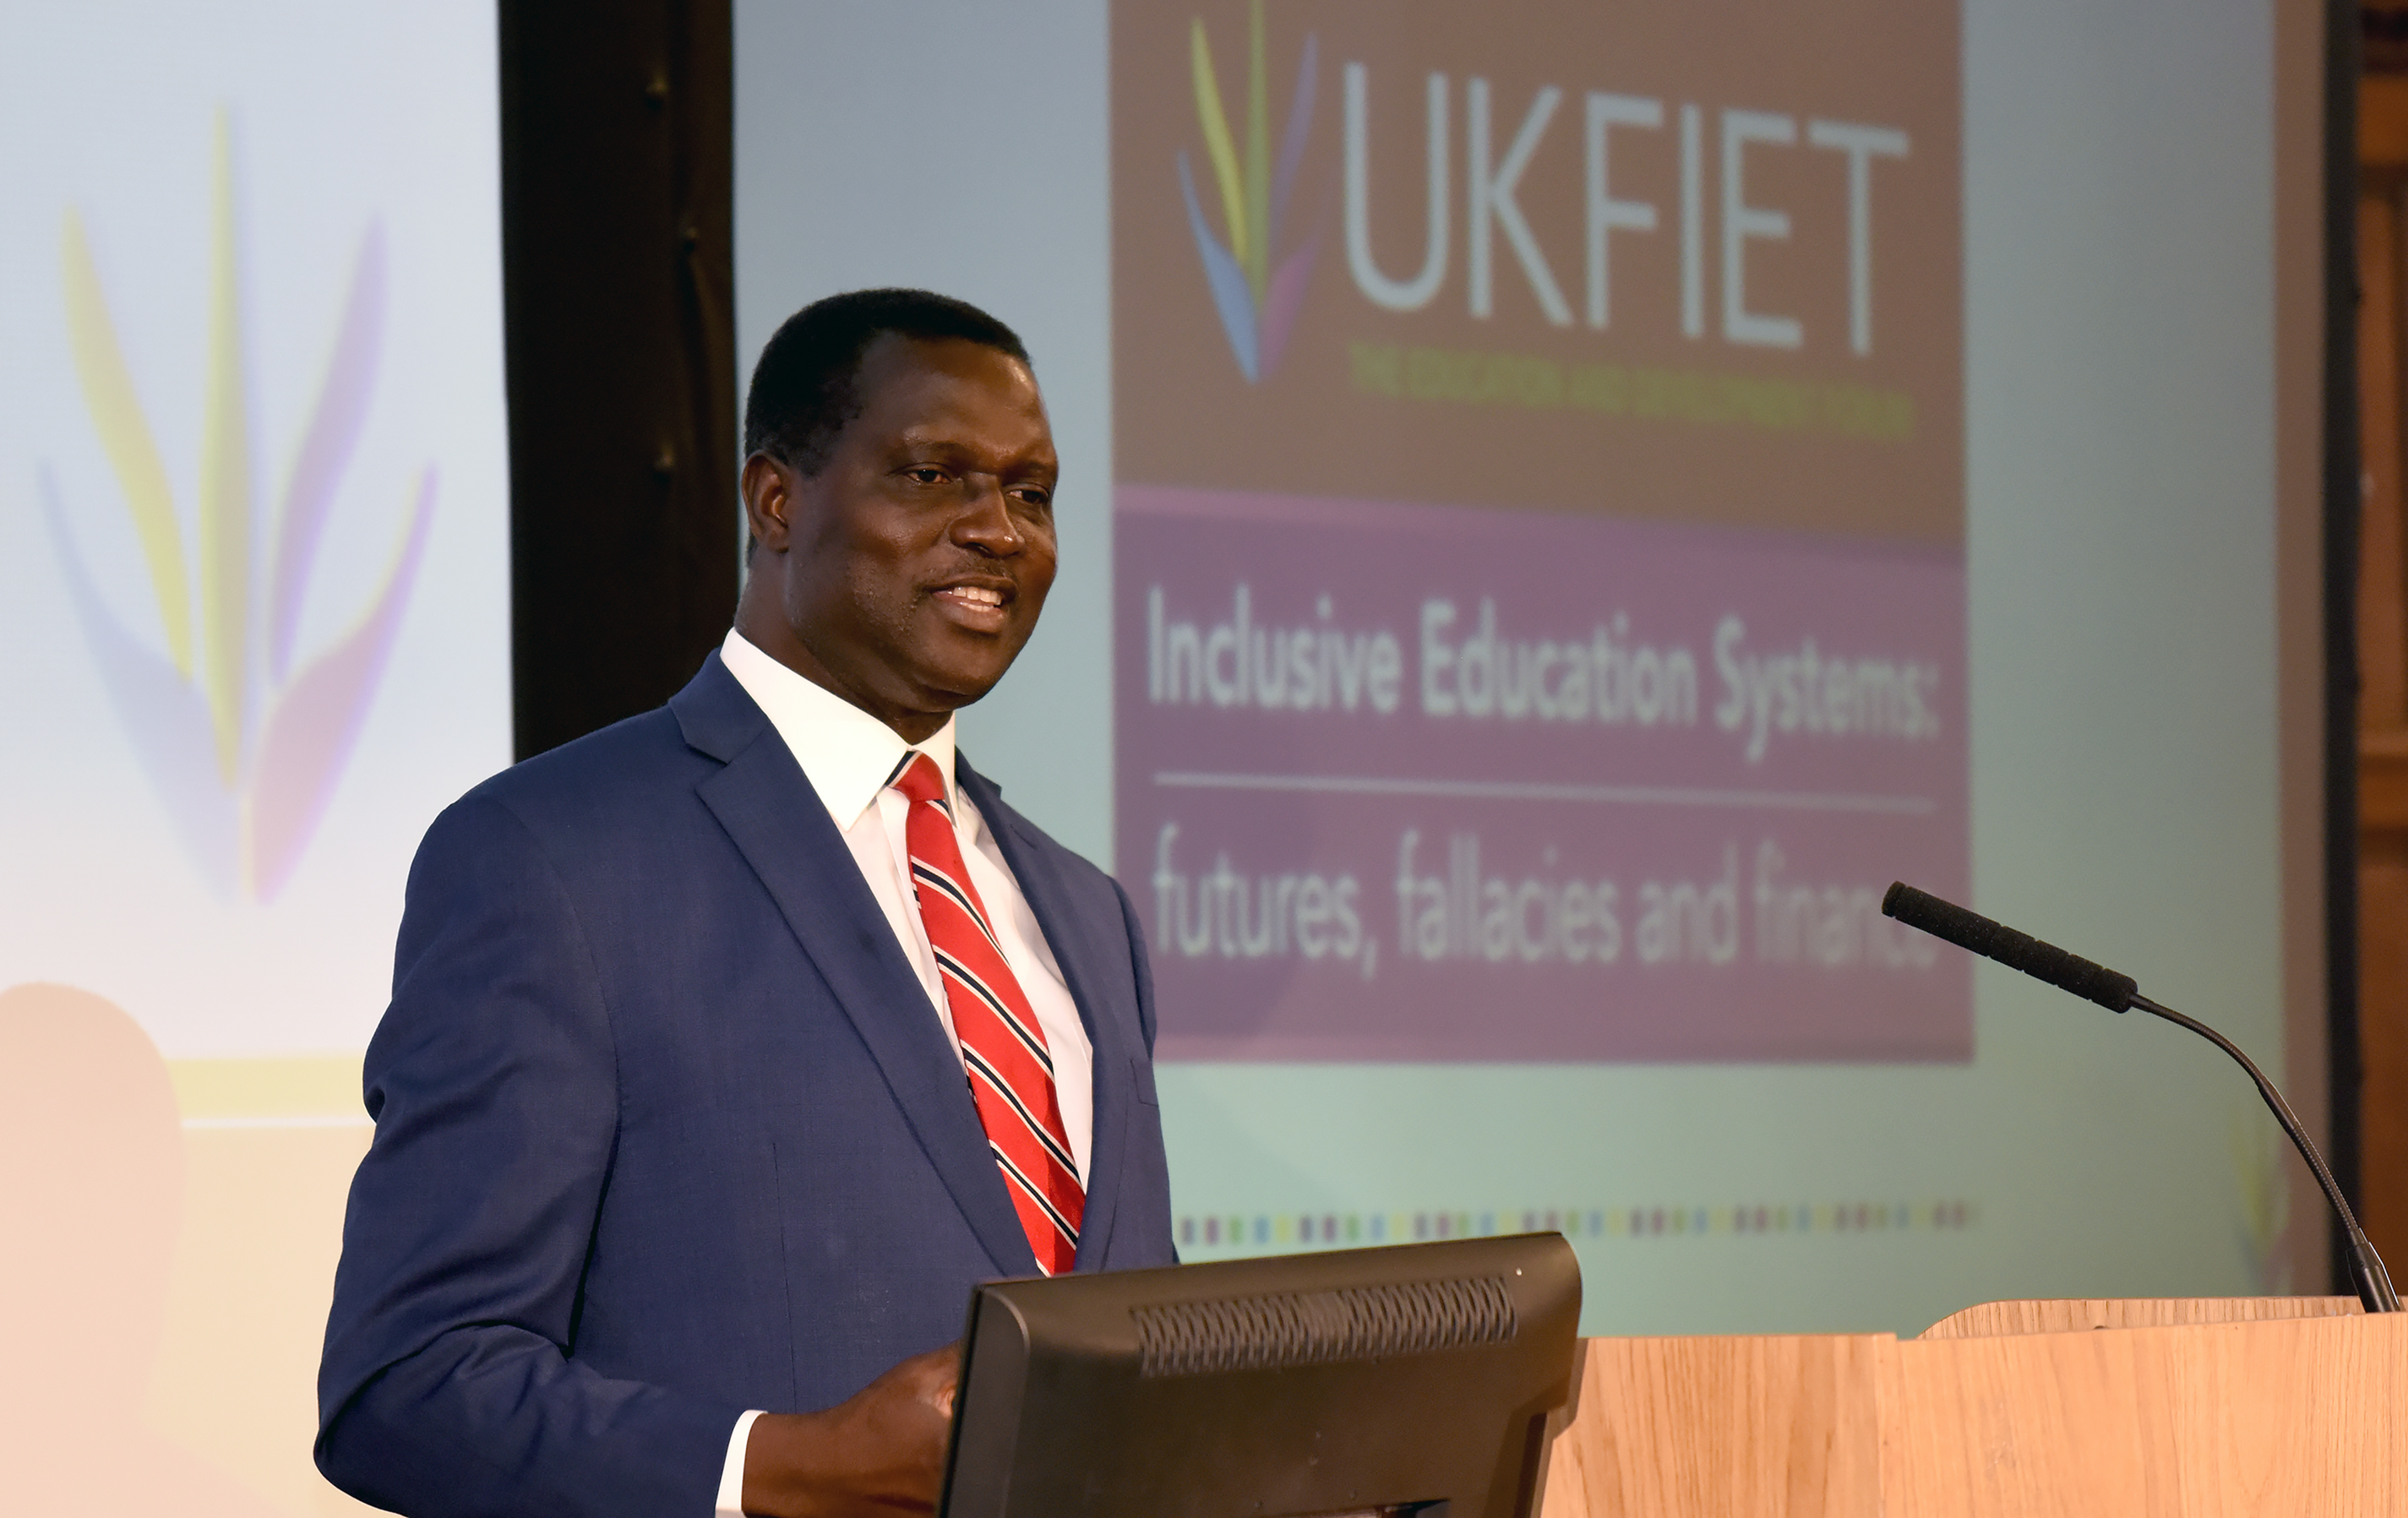 Summary of UKFIET 2019 Opening Speech by Ghana's Deputy Minister for Education – Told in Tweets